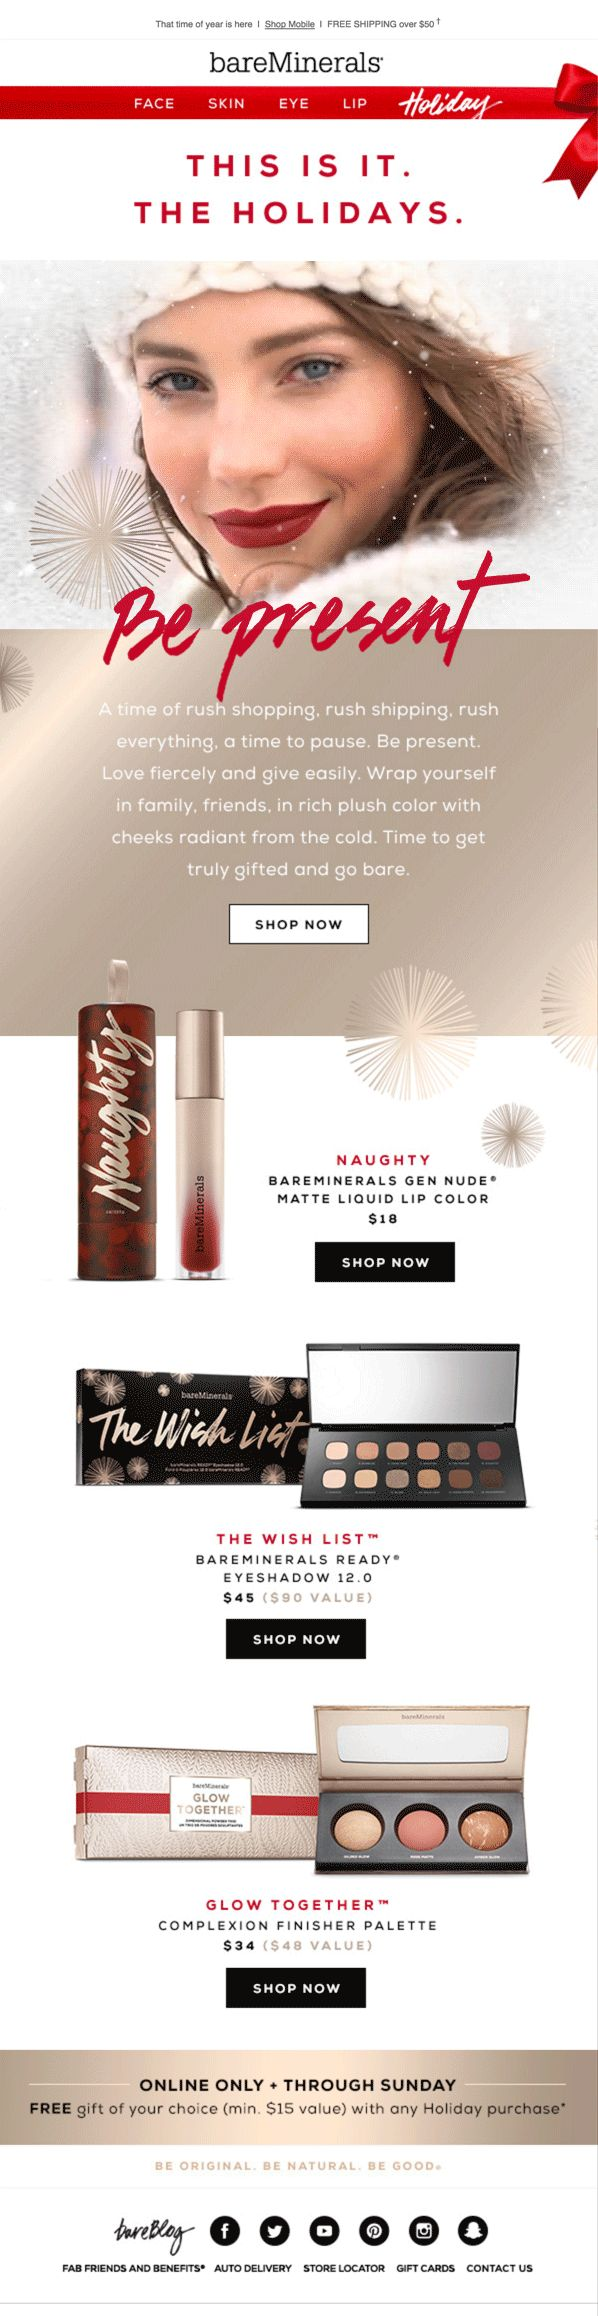 """""""Spread the cheer"""" Winter is coming! And with Winter comes the Holidays. Retailers are in full blast trying to take advantage of the season and make a big impact on consumers. However, it's not always about doing the most. This bareMinerals email does an amazing job of using an animation in a subtle way in order to generate intrigue without overdoing it. Once drawn in by the gif, the rest of the email is bold, cohesive, and festive-just like the Holiday season!"""